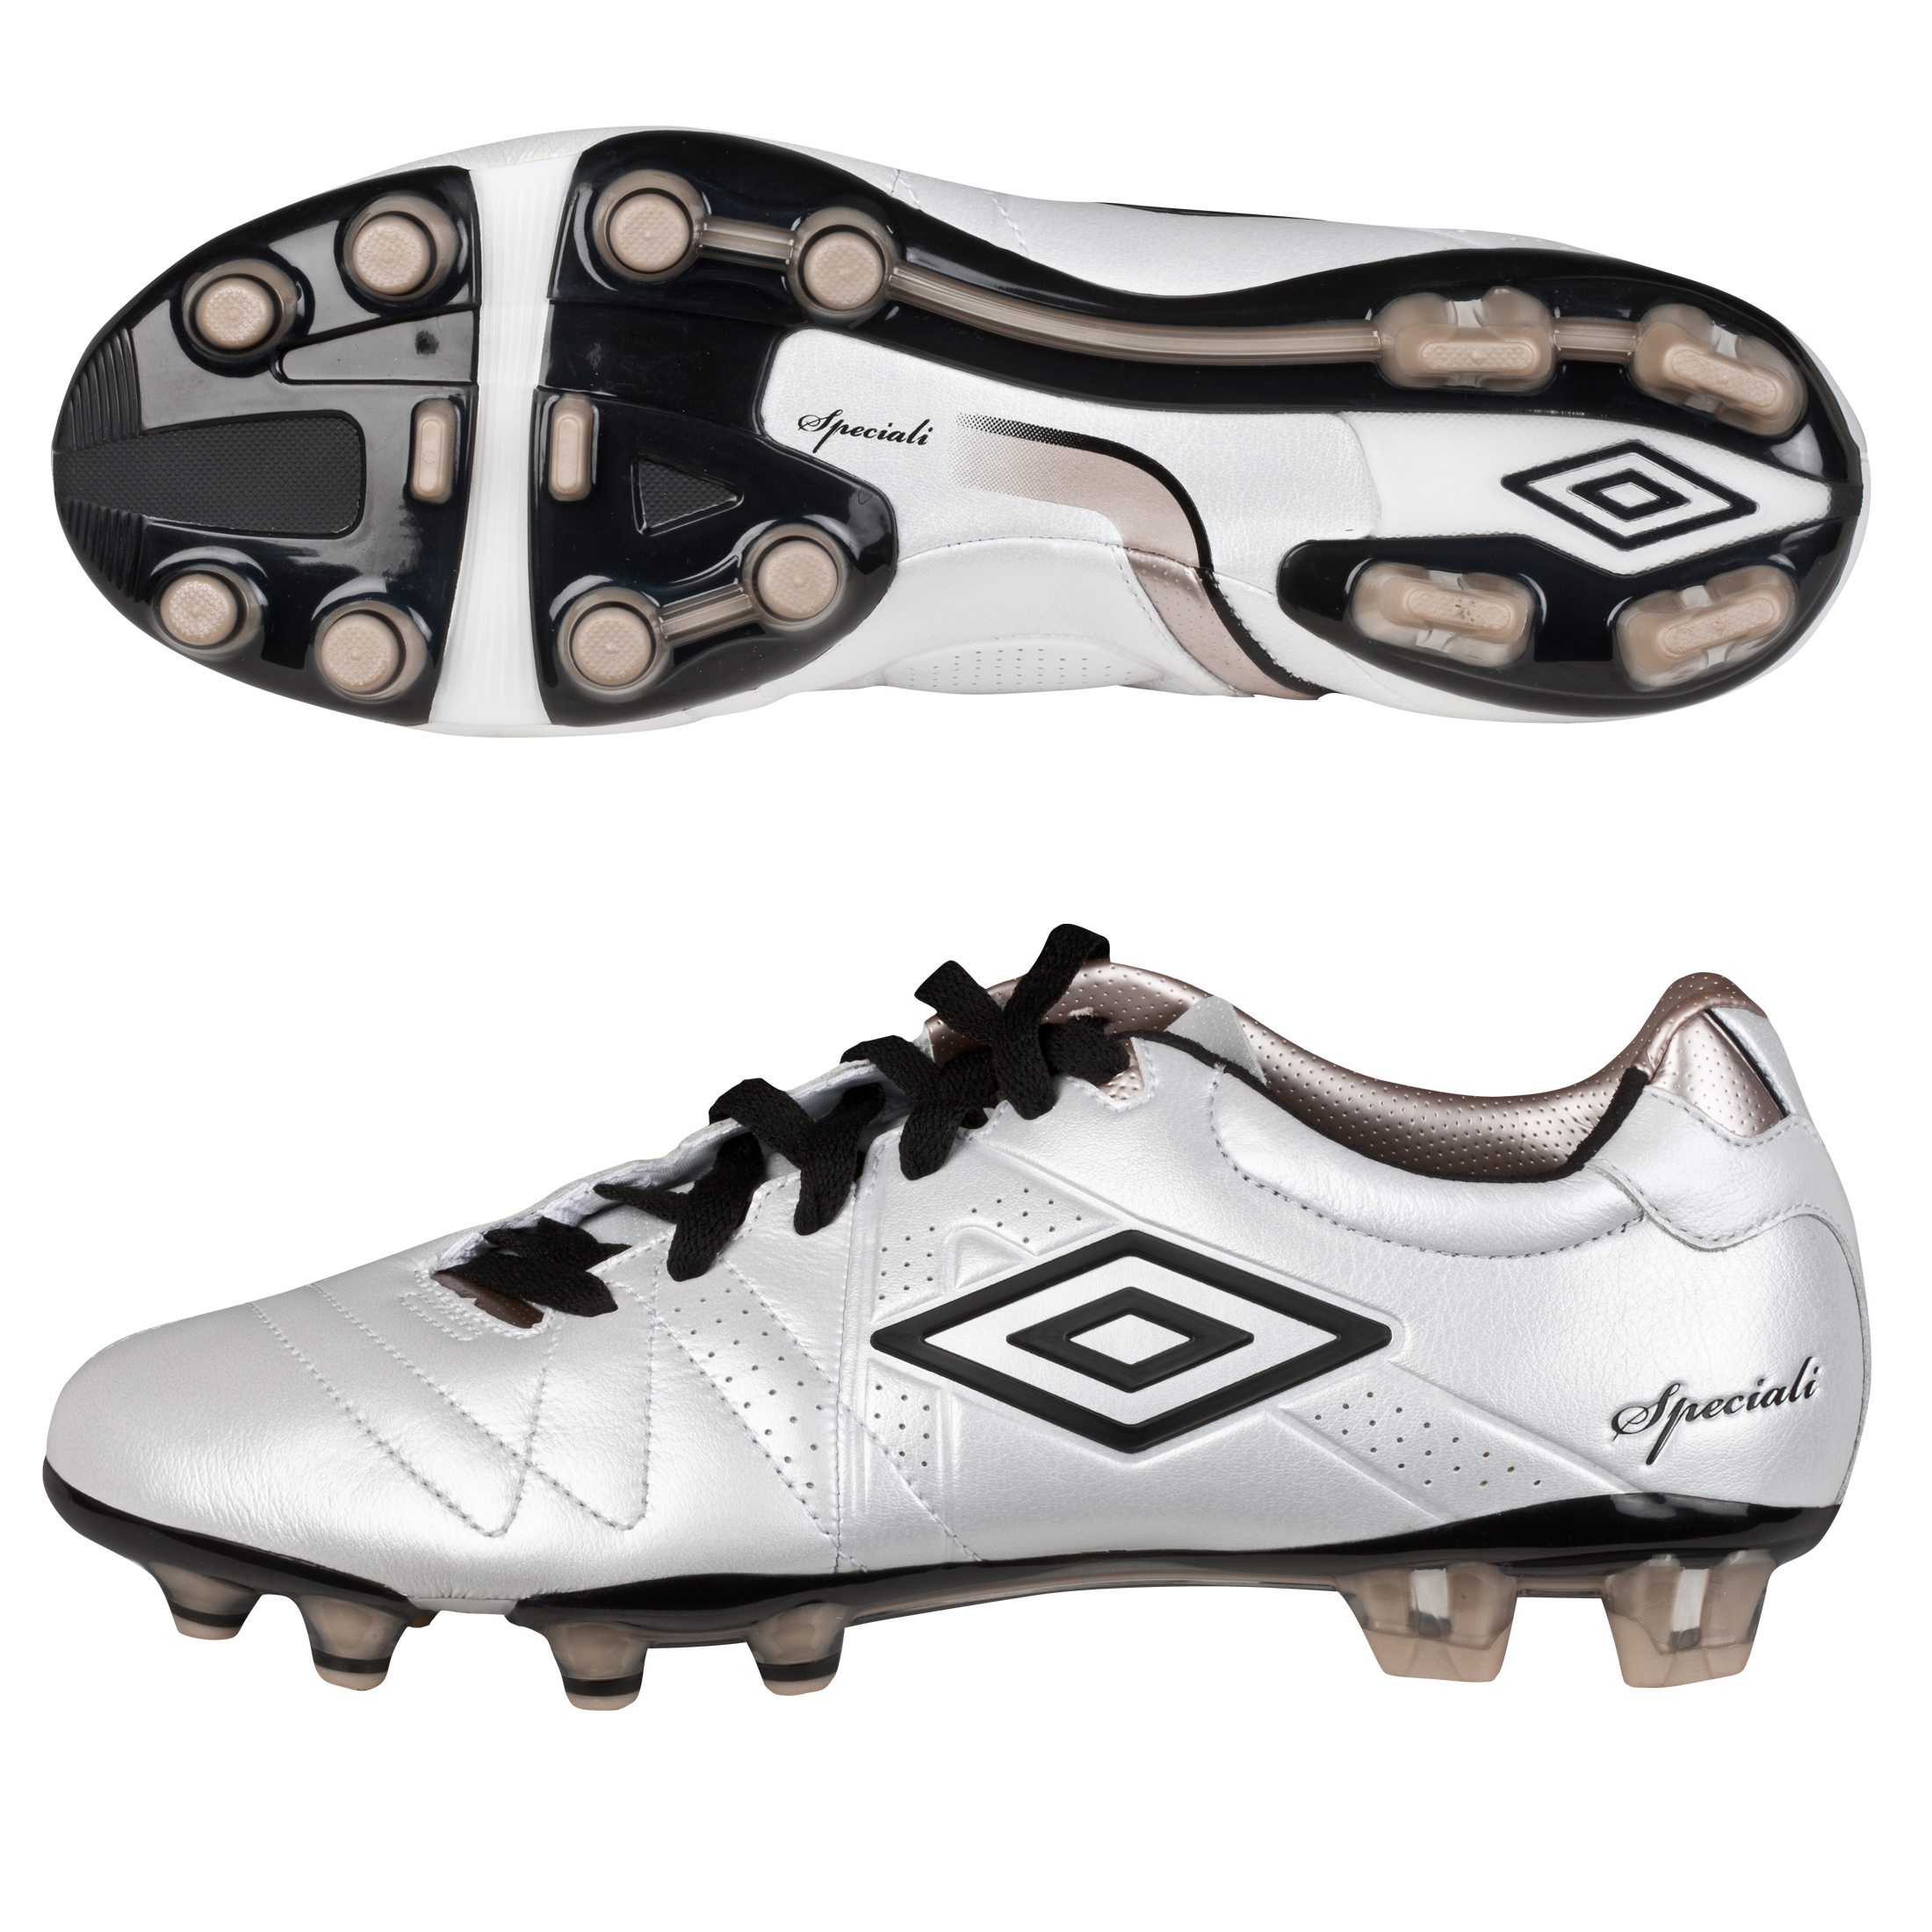 Umbro Speciali 3 Pro Hard Ground Football Boots - Pearlised White/Black/Pewter